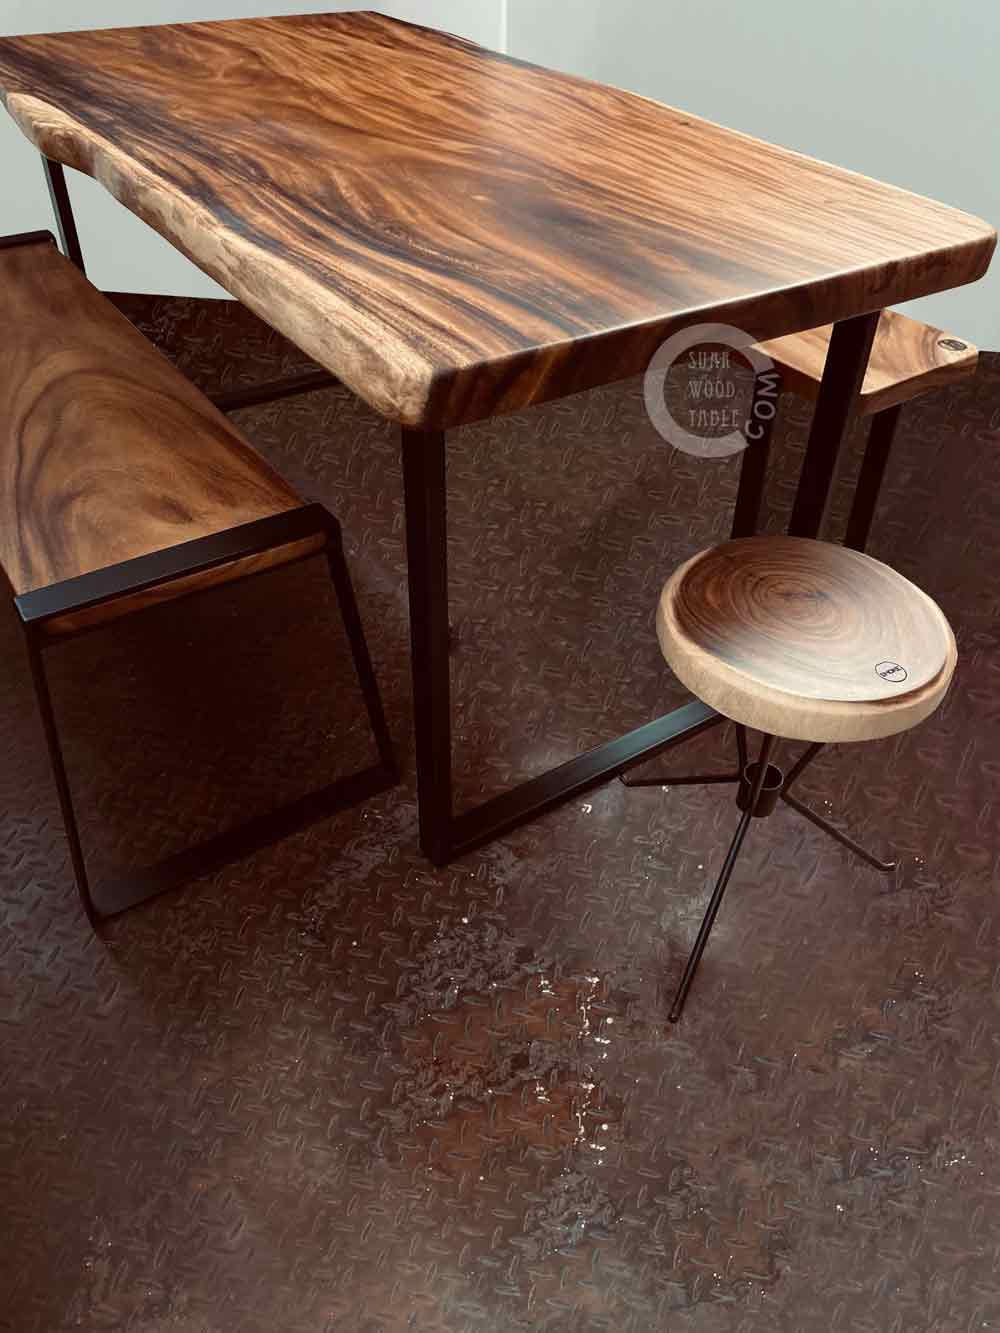 natural edge south american walnut table